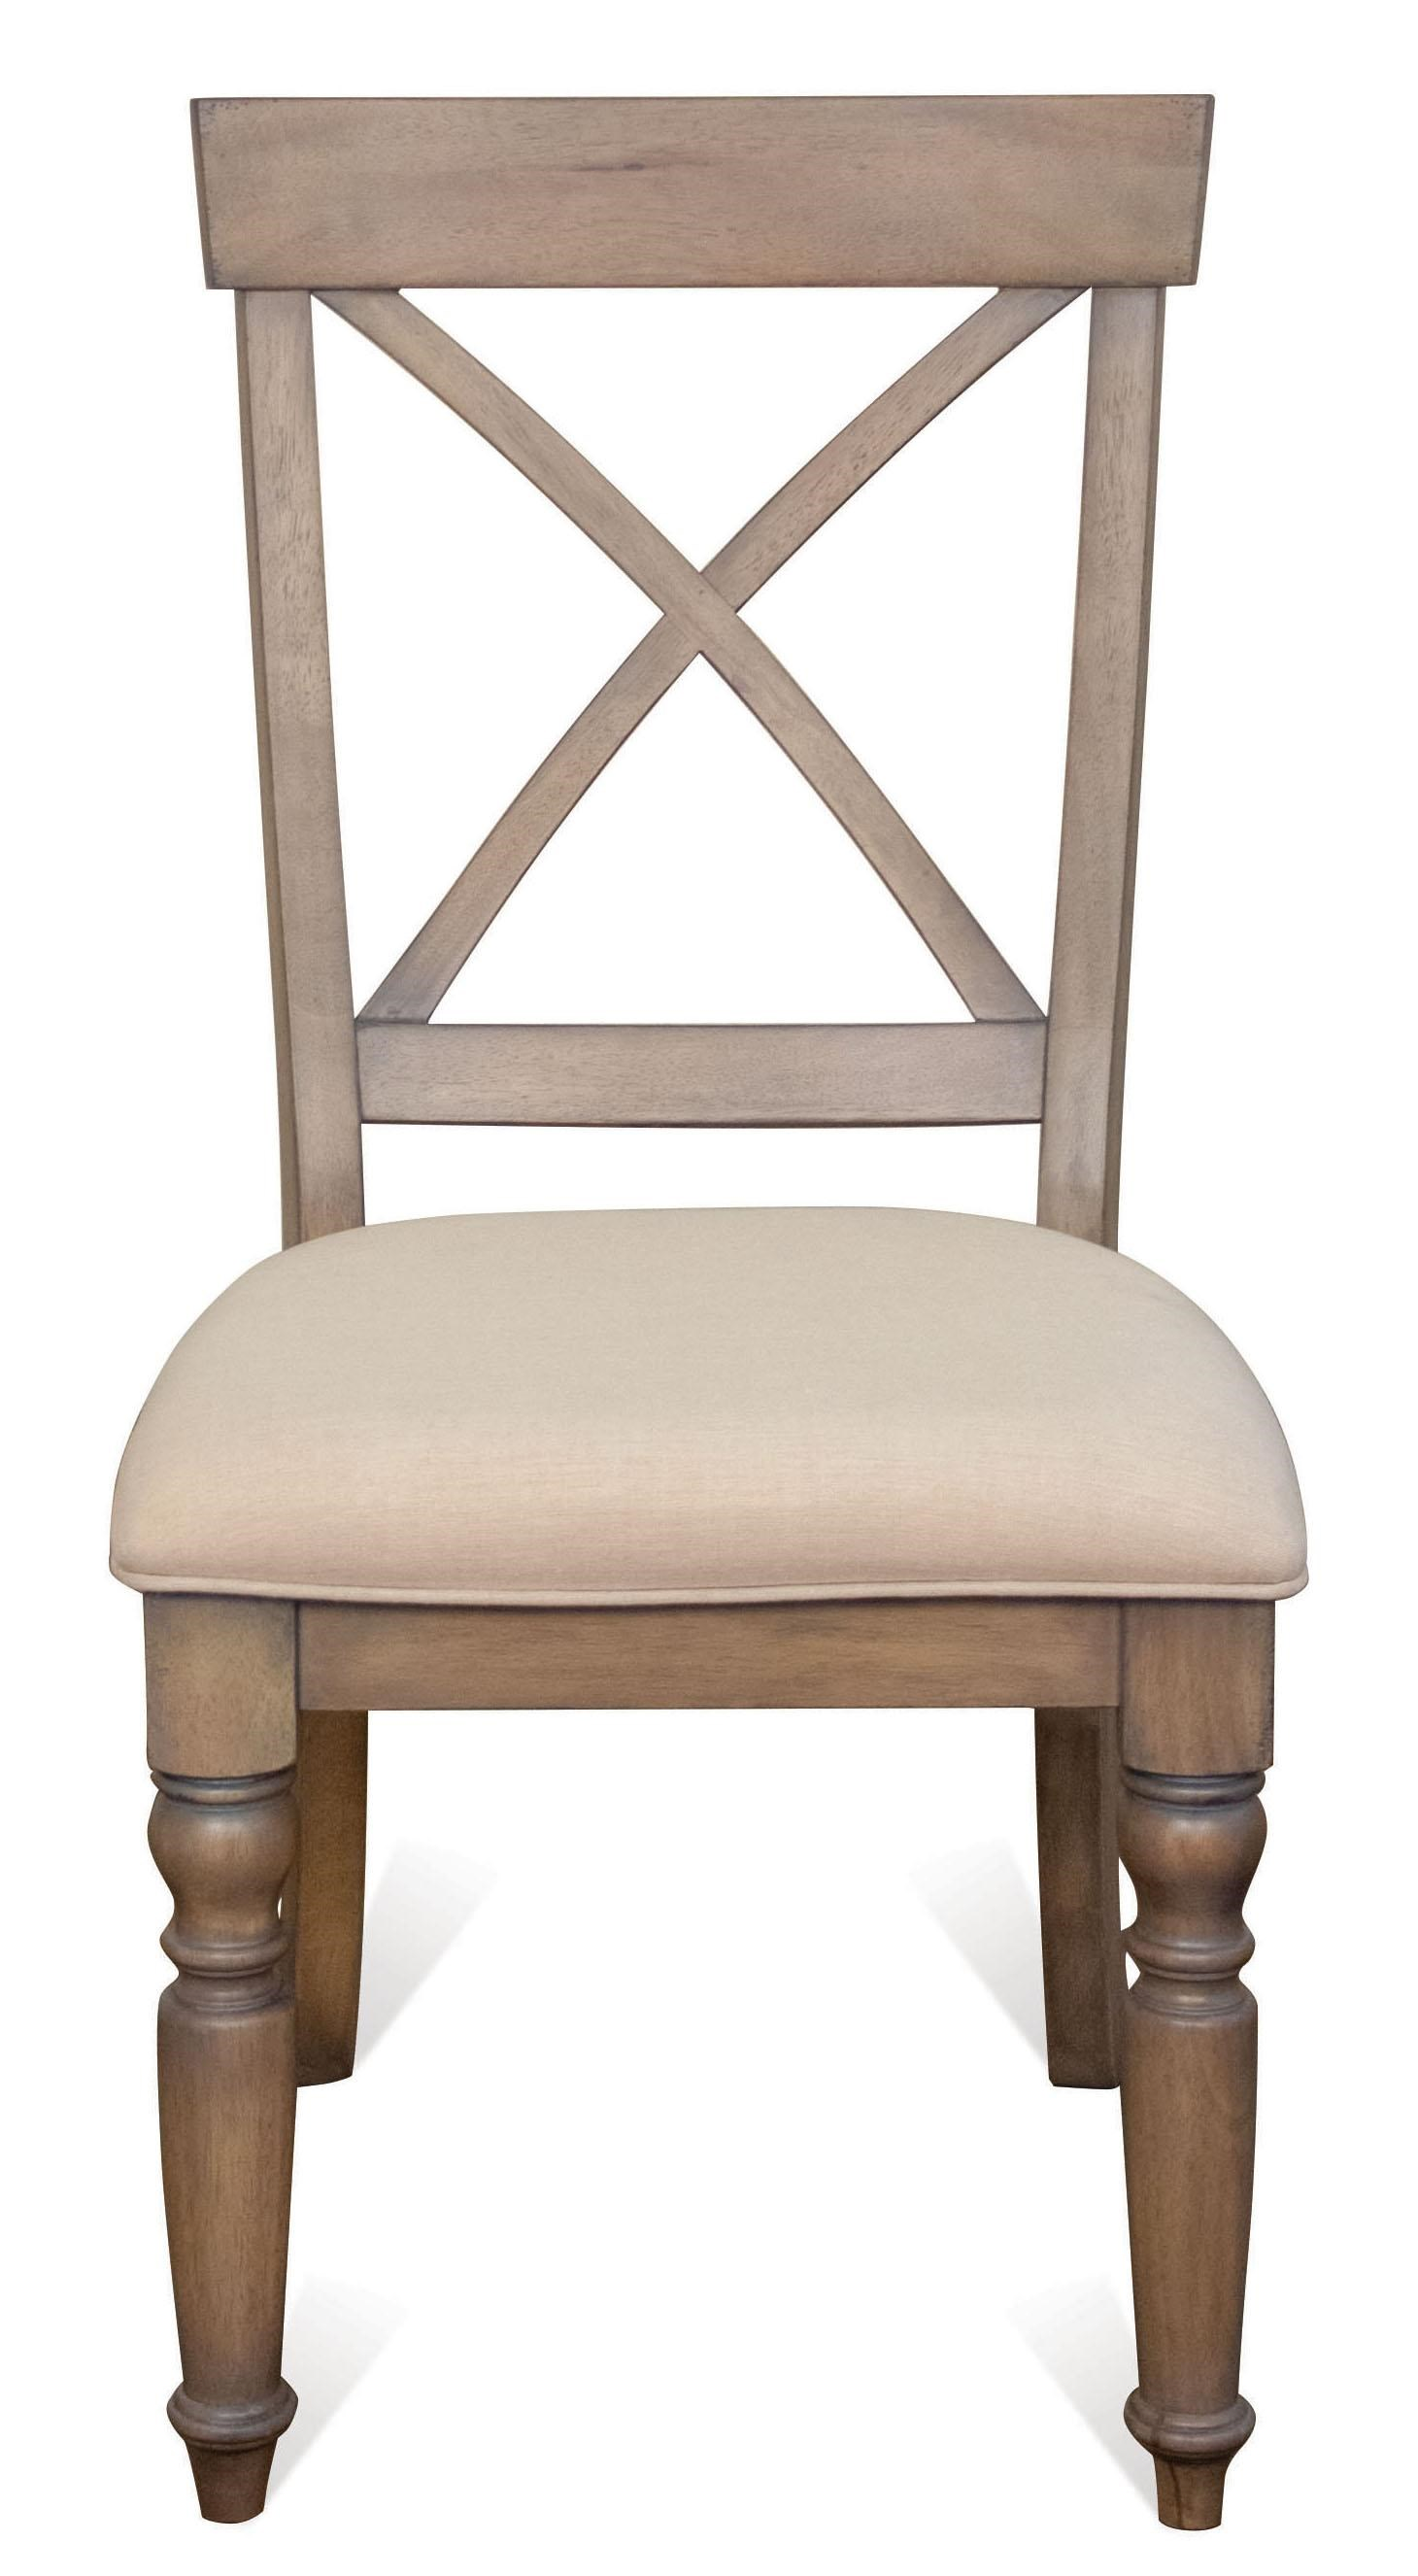 Riverside Furniture Aberdeen X Back Side Chair W/ Turned Legs